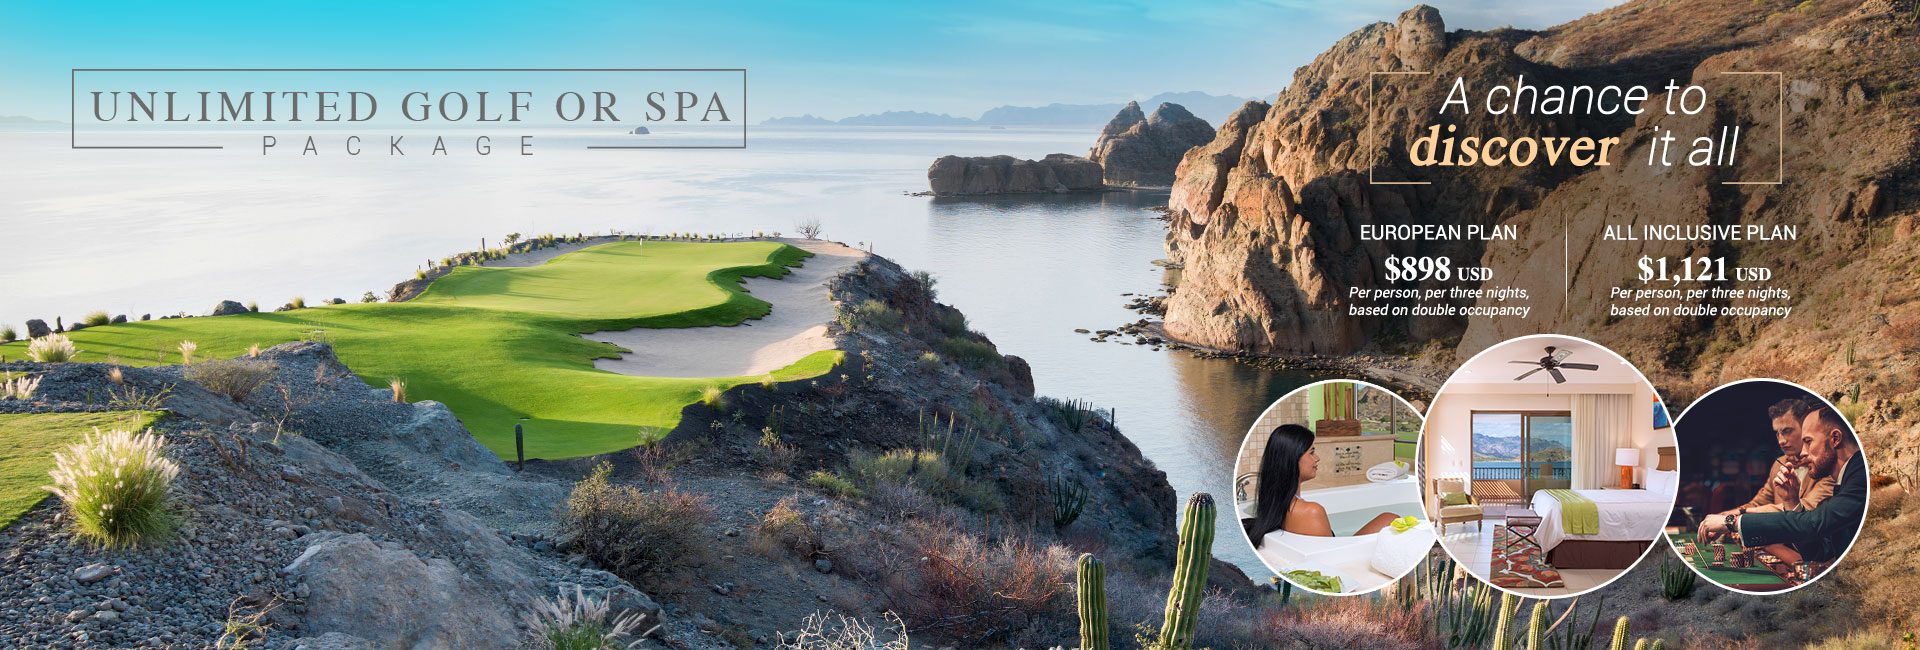 Unlimited Golf or Spa Package TPC Danzante Bay